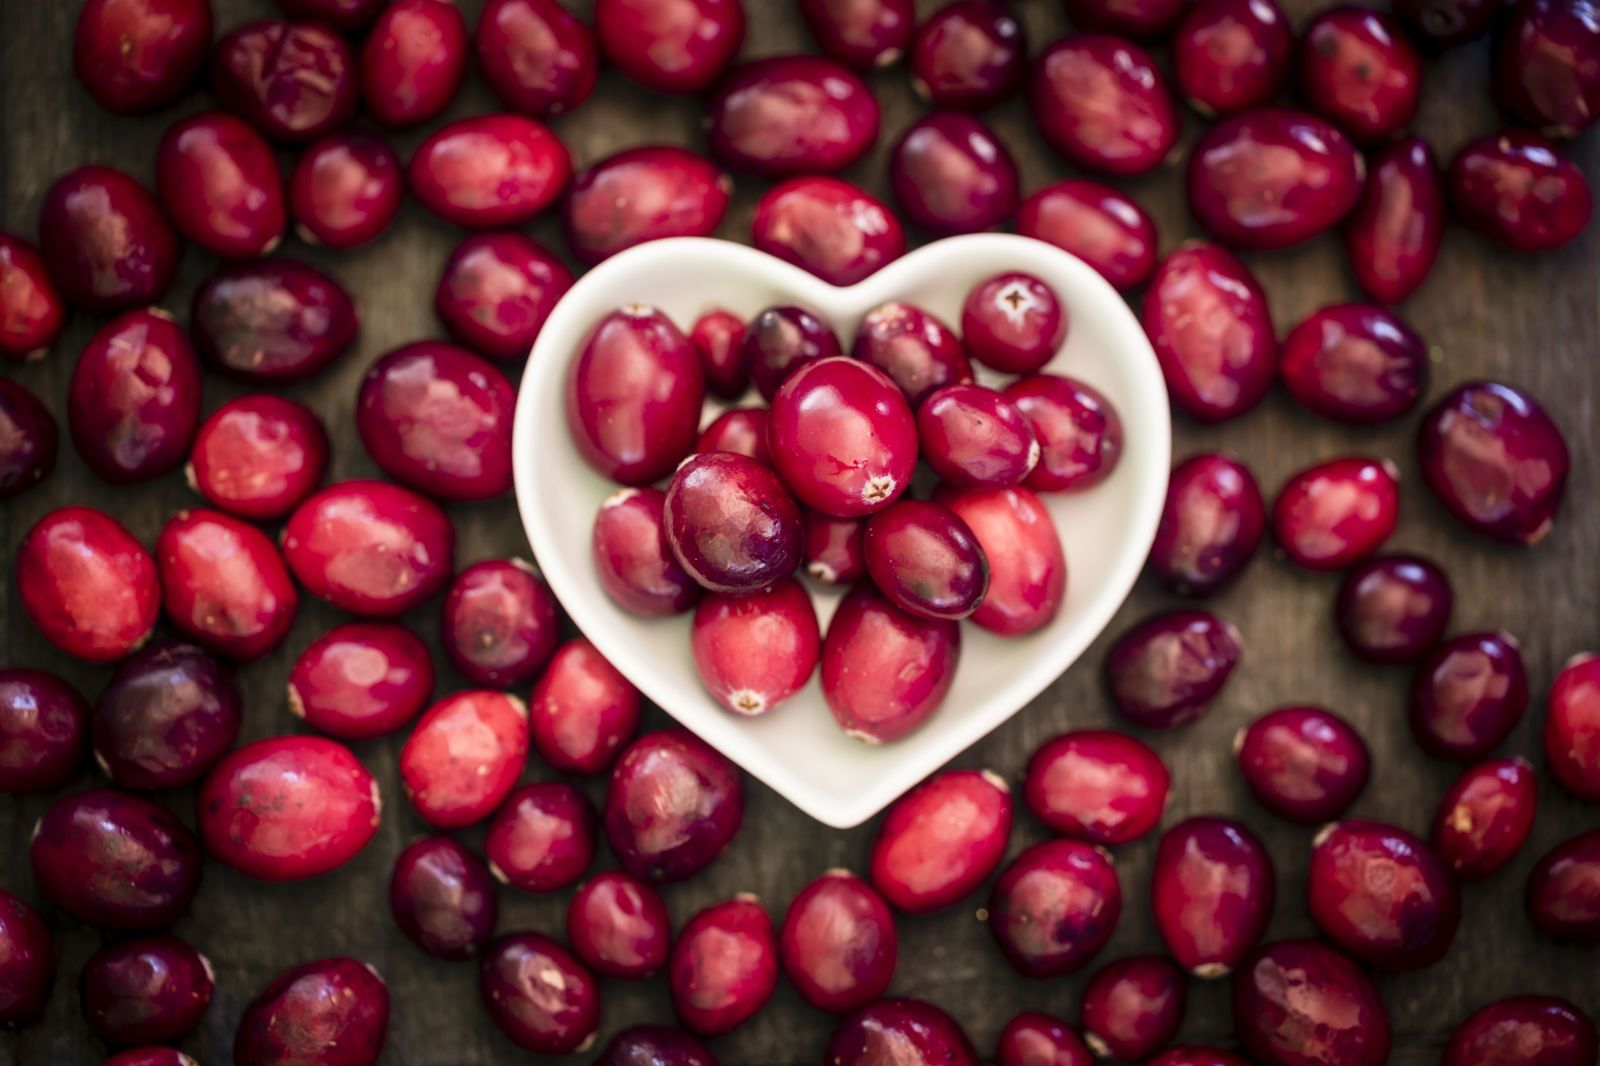 Cranberry juice does NOTHING for cystitis or UTIs (With